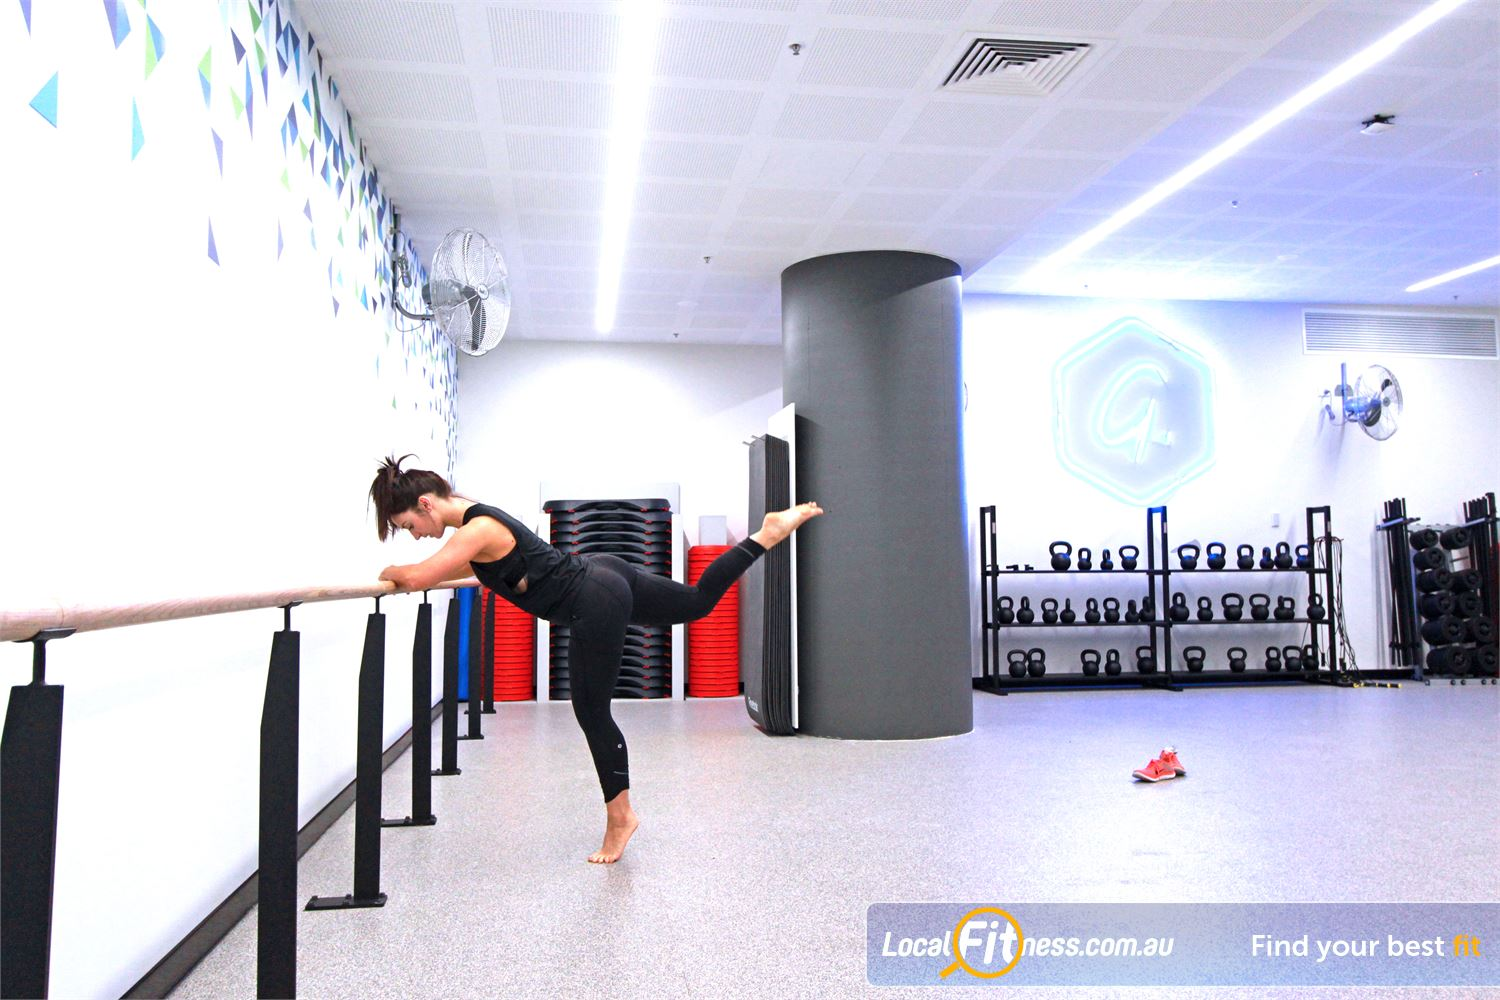 Goodlife Health Clubs Docklands Enjoy our Yoga, Pilates and Docklands Barre classes.